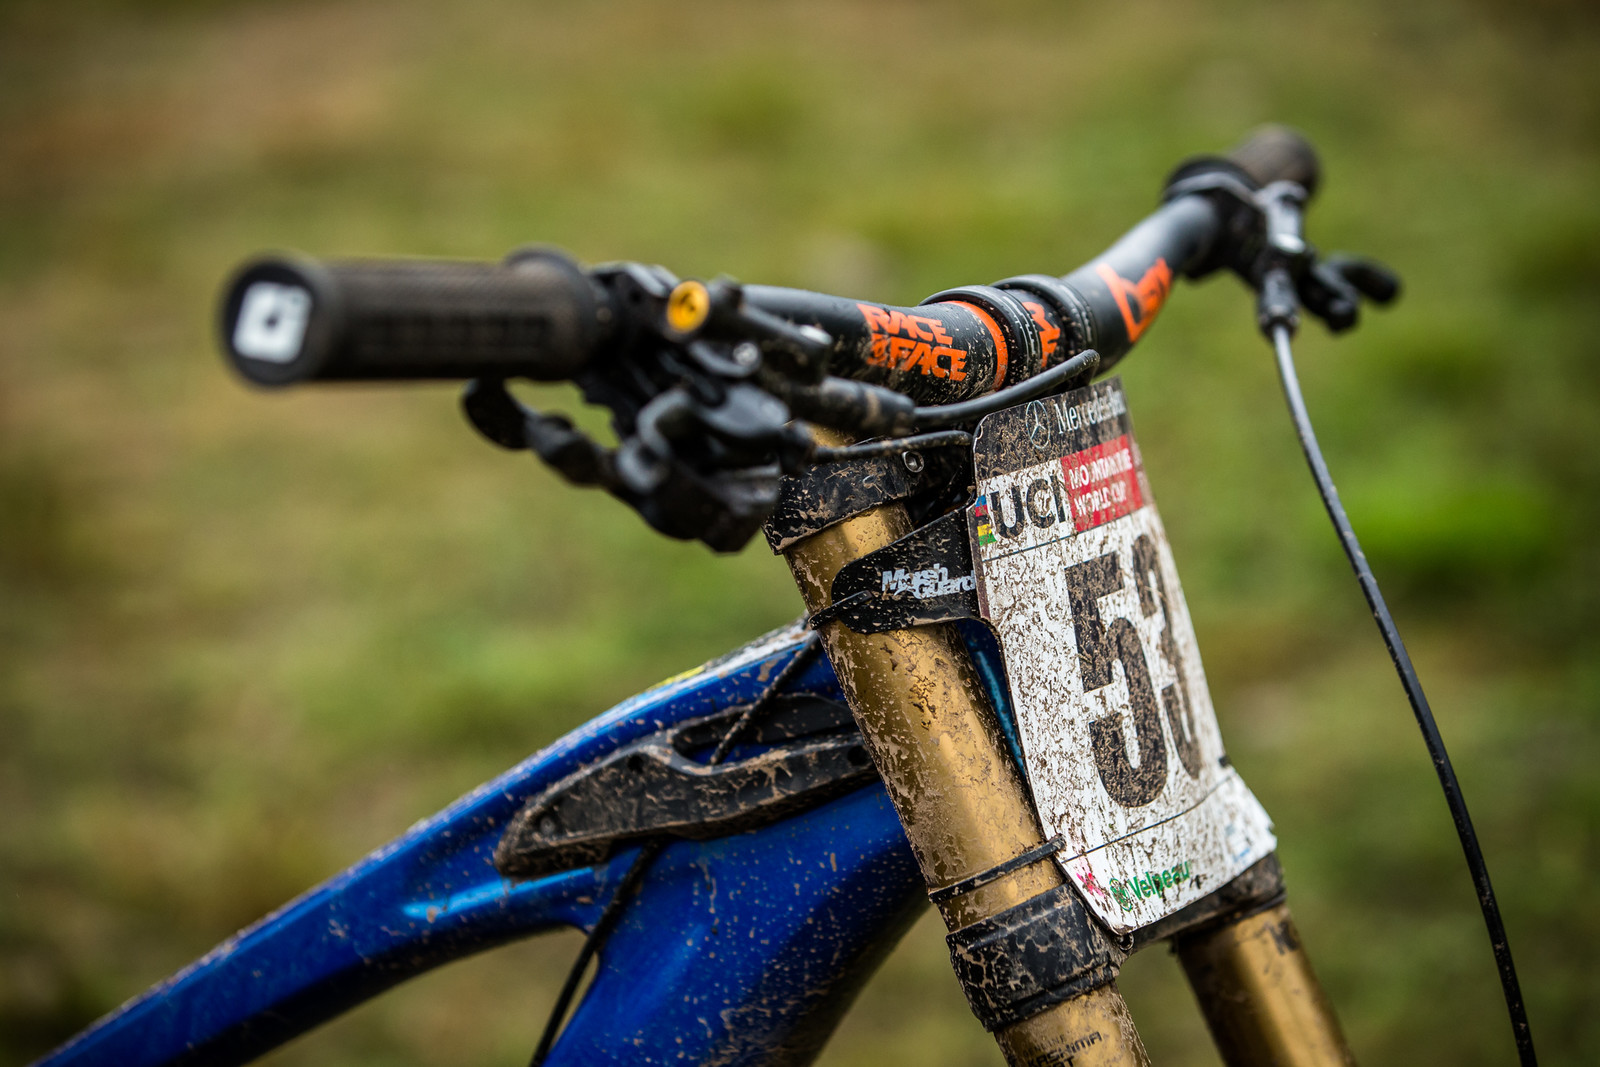 Race Face SixC Bars - WINNING BIKE - Martin Maes' GT Fury - Mountain Biking Pictures - Vital MTB